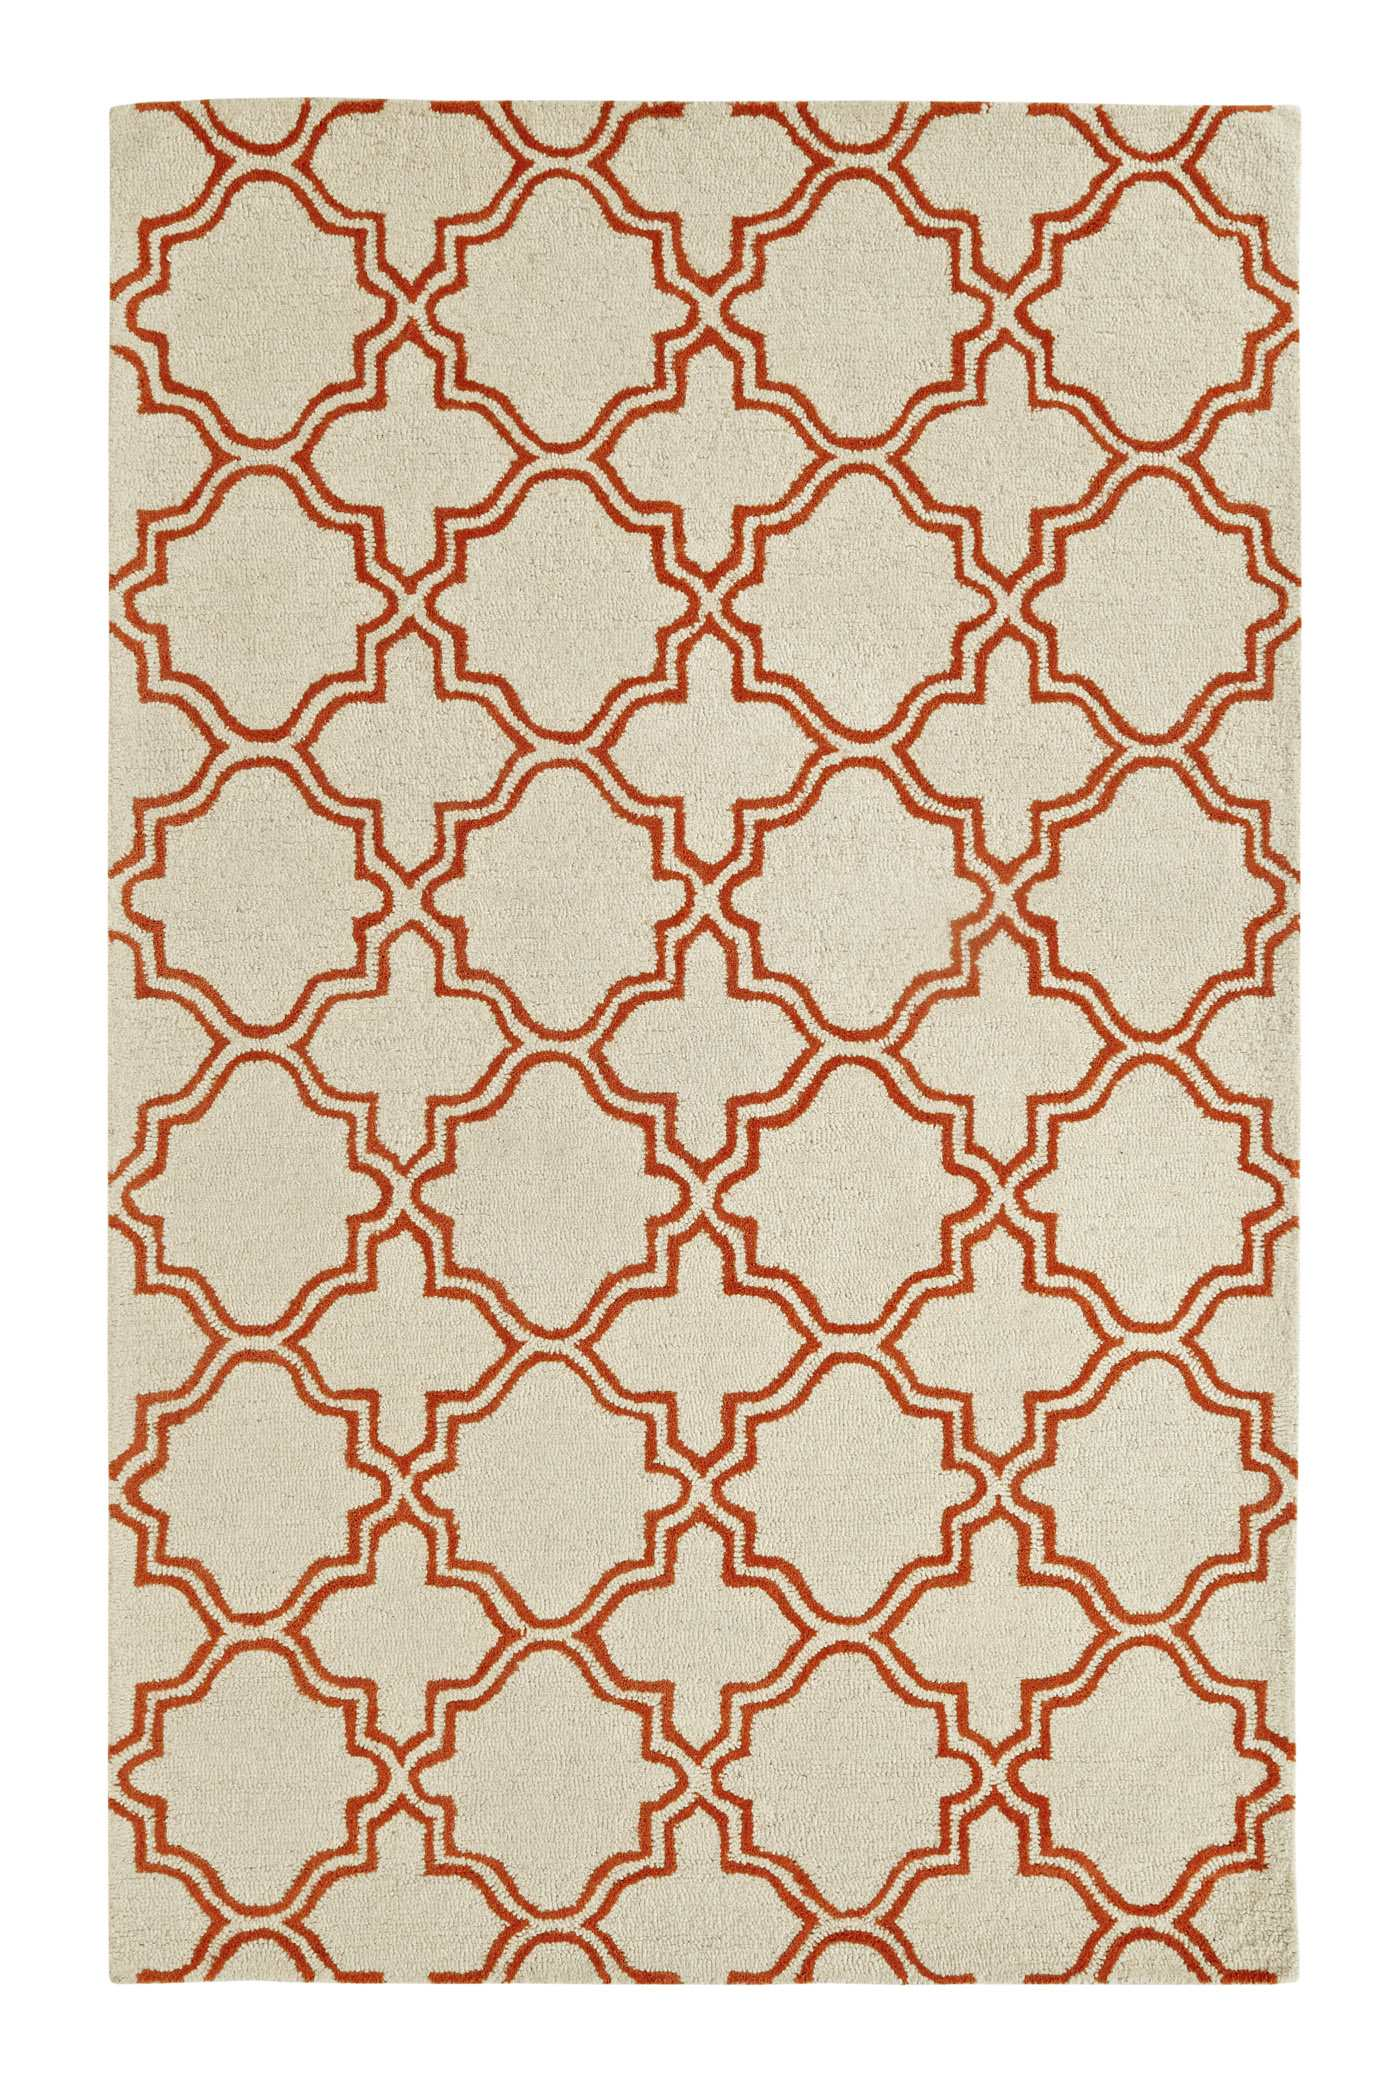 Dynamic Rugs Palace Geometric Ivory/orange 5568 Area Rug